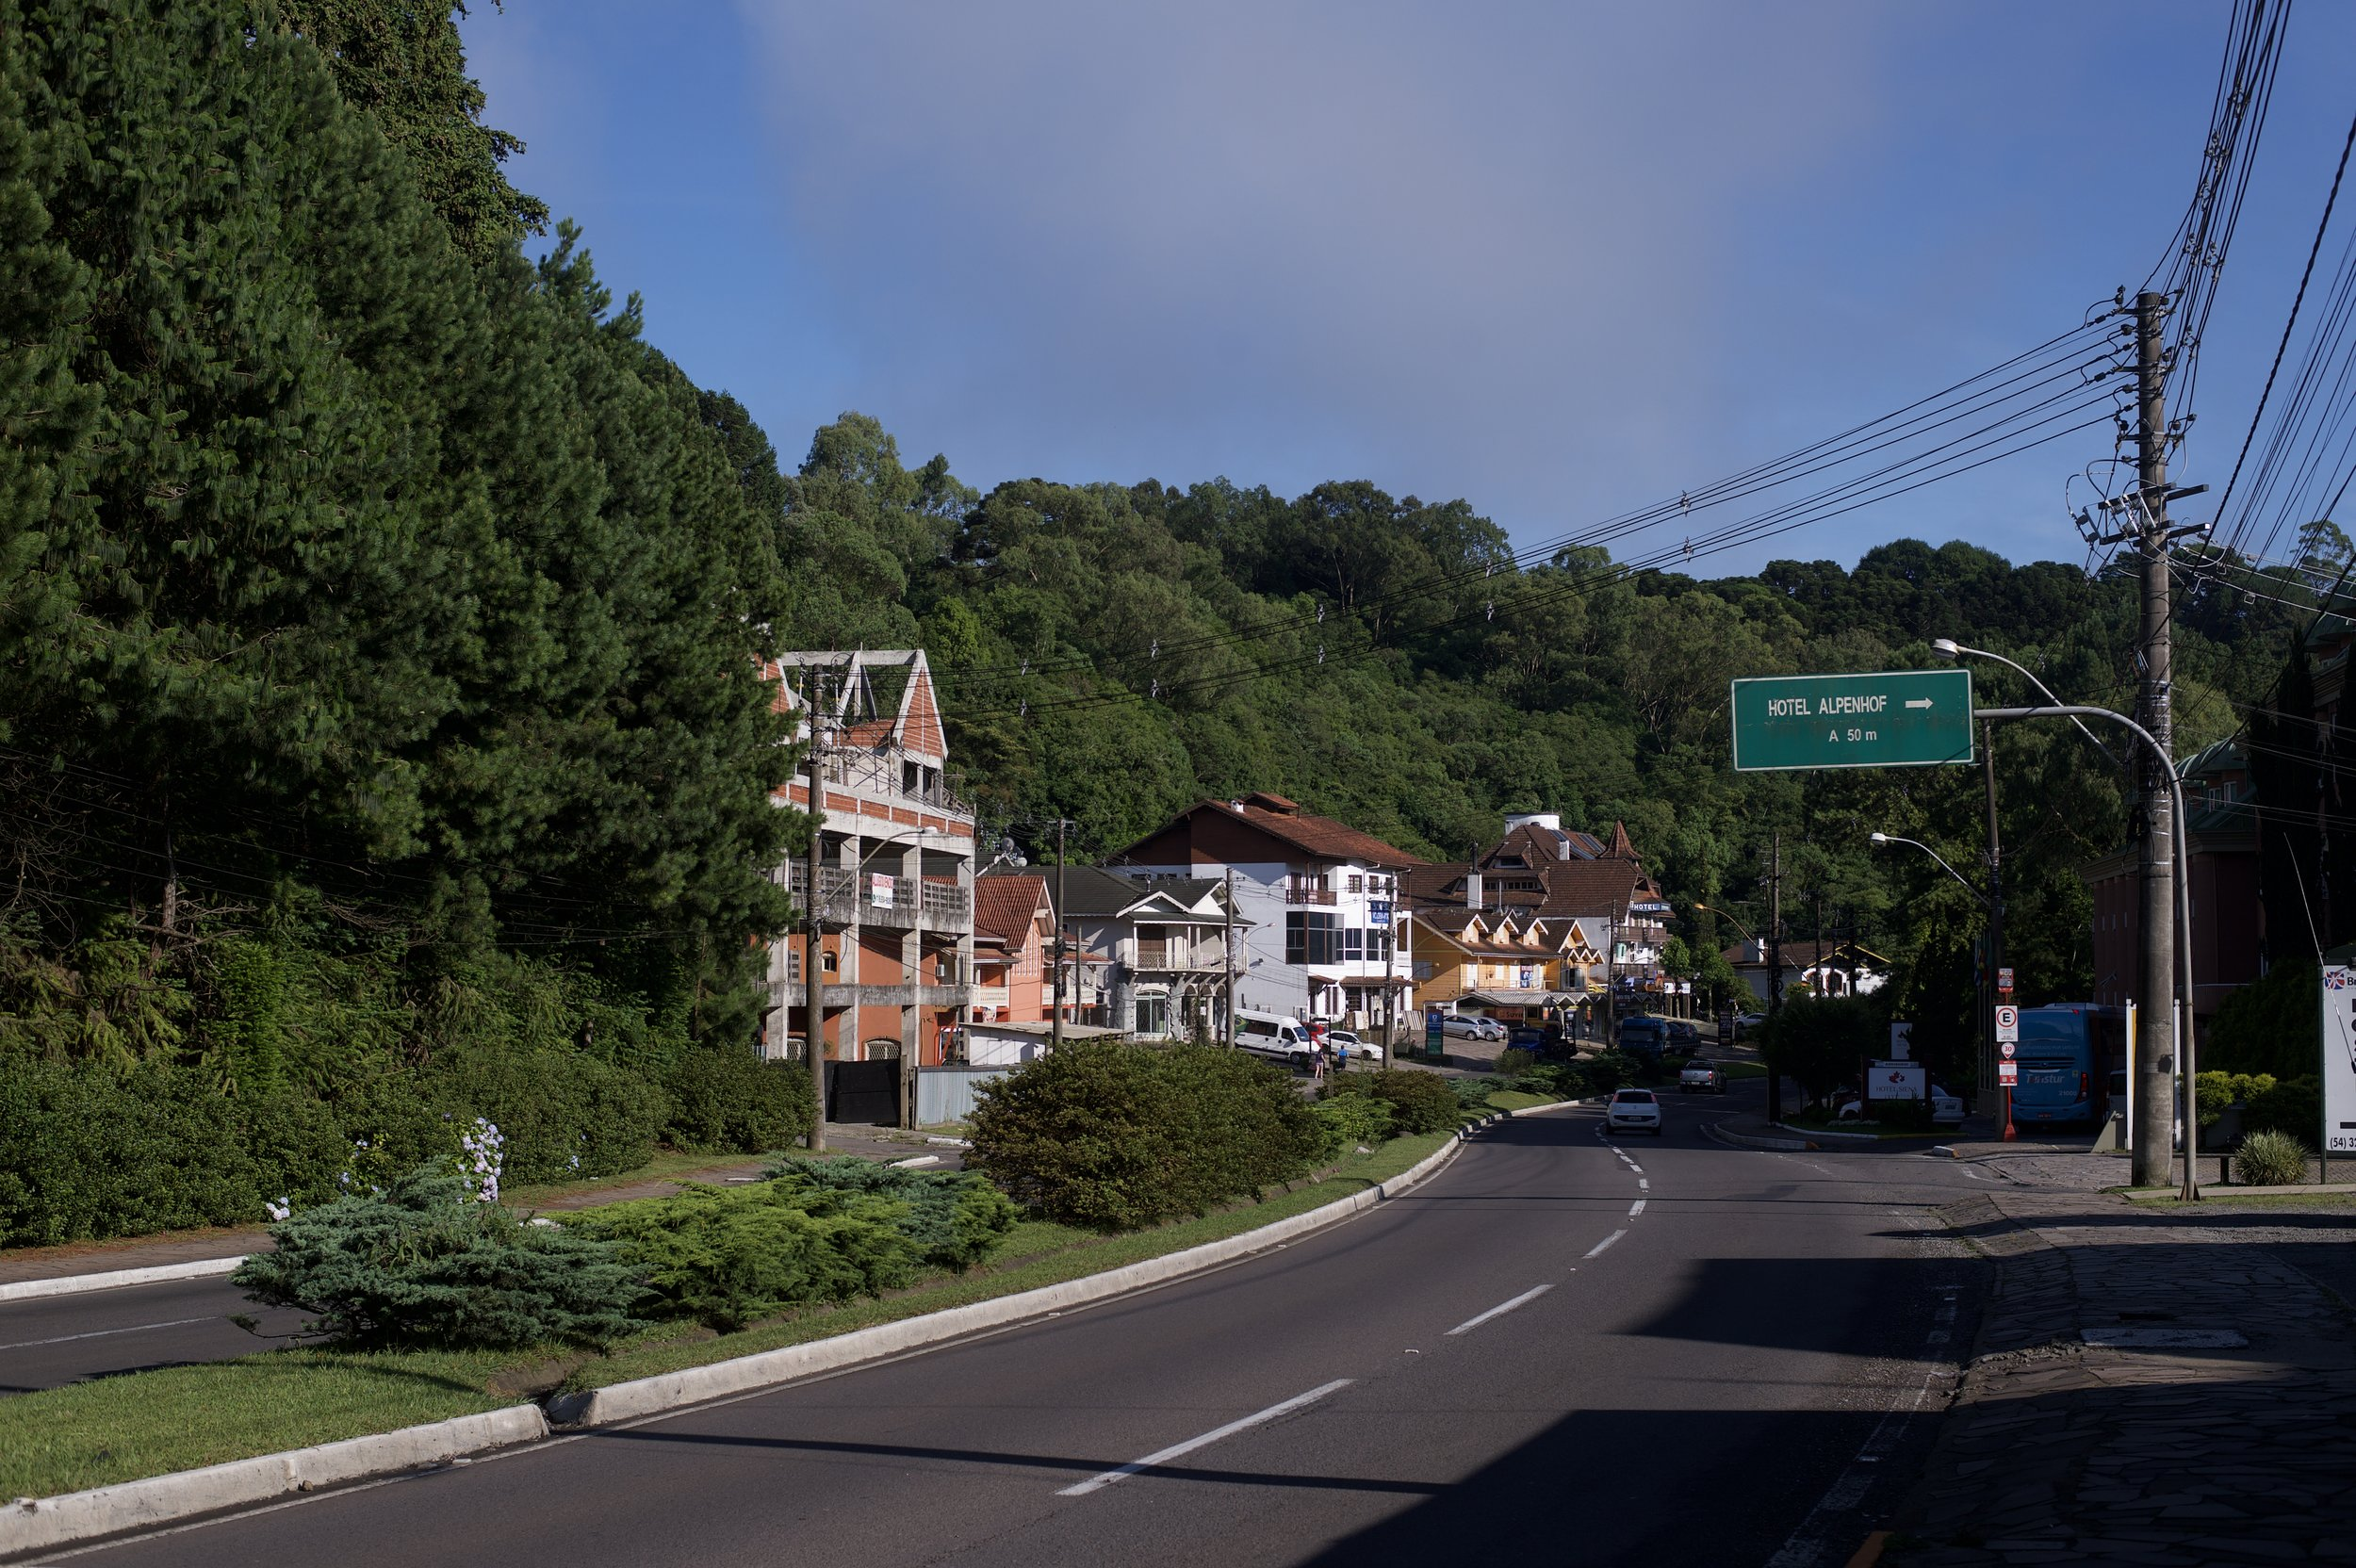 Gramado, Brazil. The little hidden gem of southern Brazil is found not too far away from Montevideo (1.5 days of driving) or Floripa (about 8 hours away).